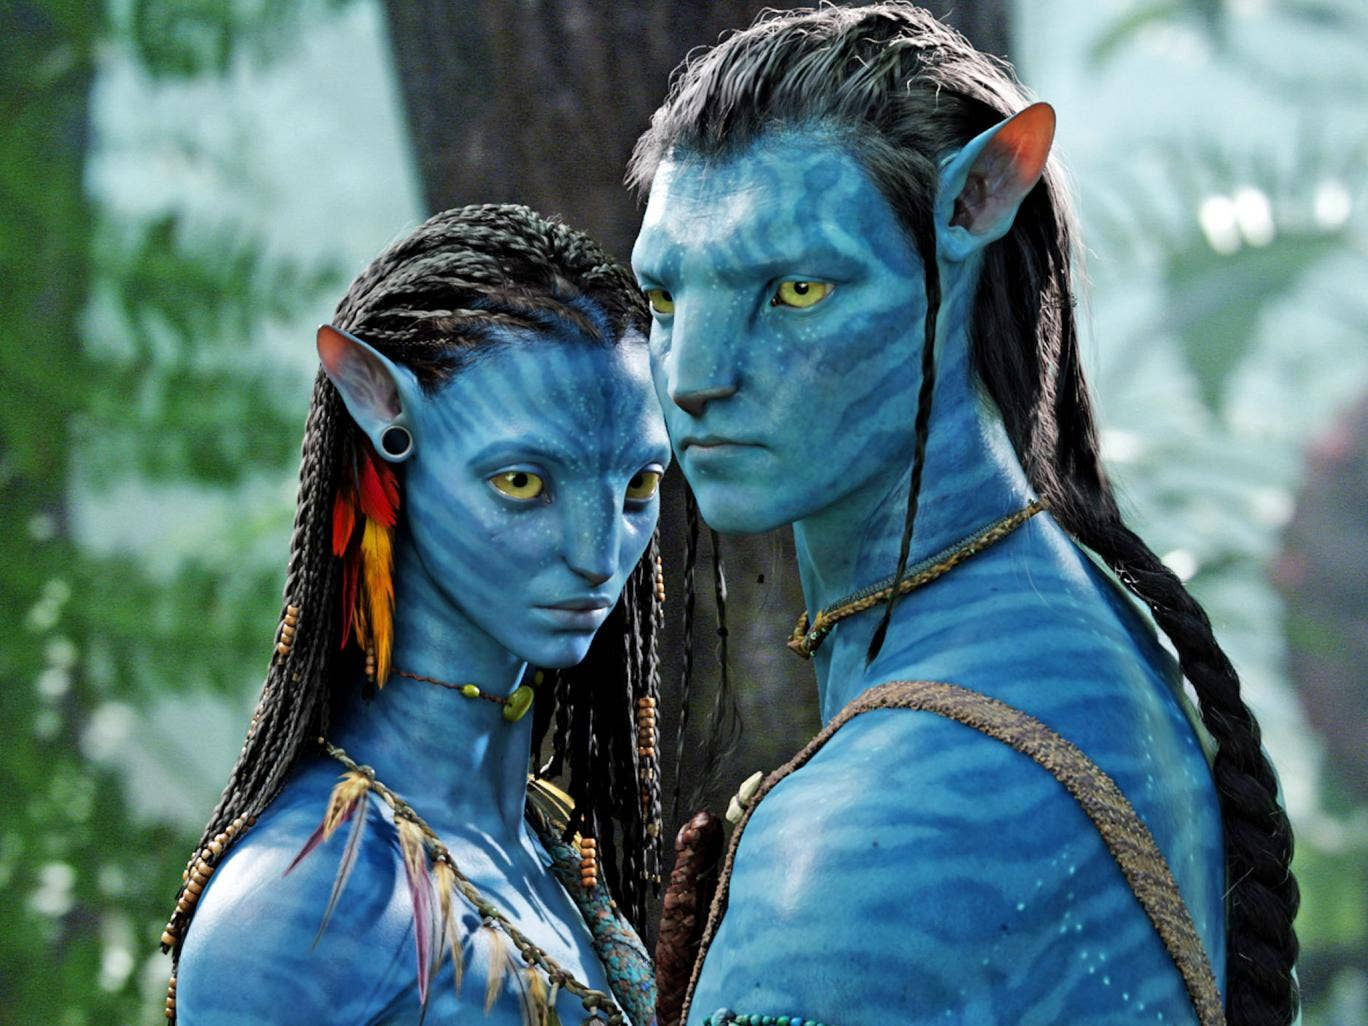 Avatar grossed $2.8bn at the box office after its release in 2009